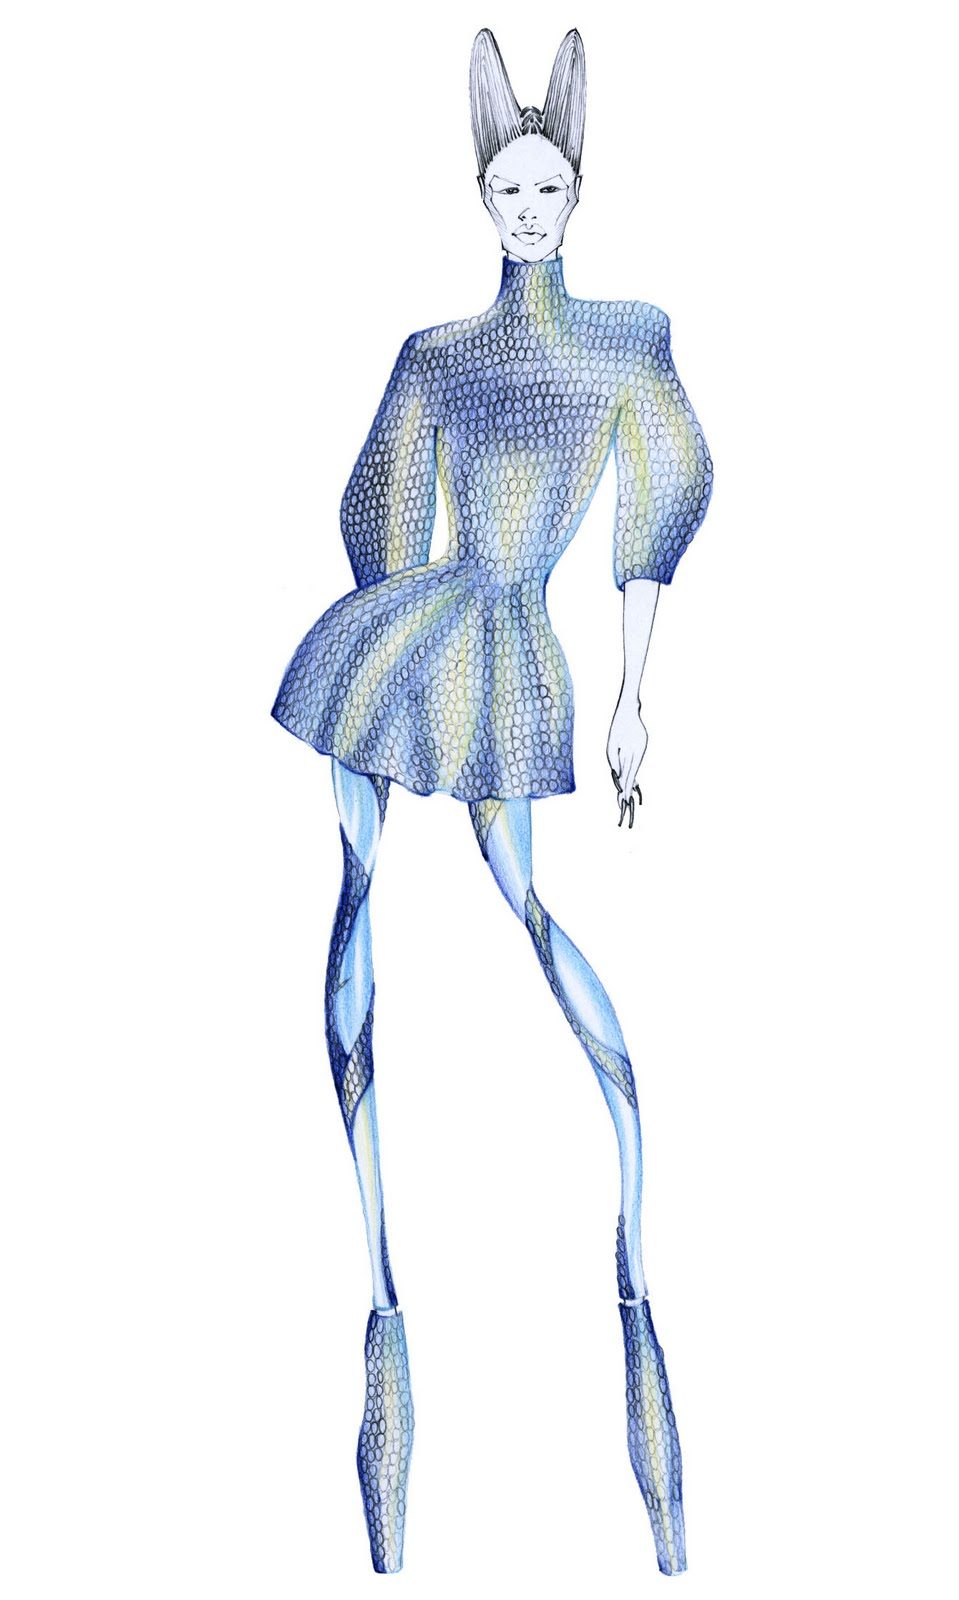 309 best fashion illustration - Alexander McQueen (by for him)